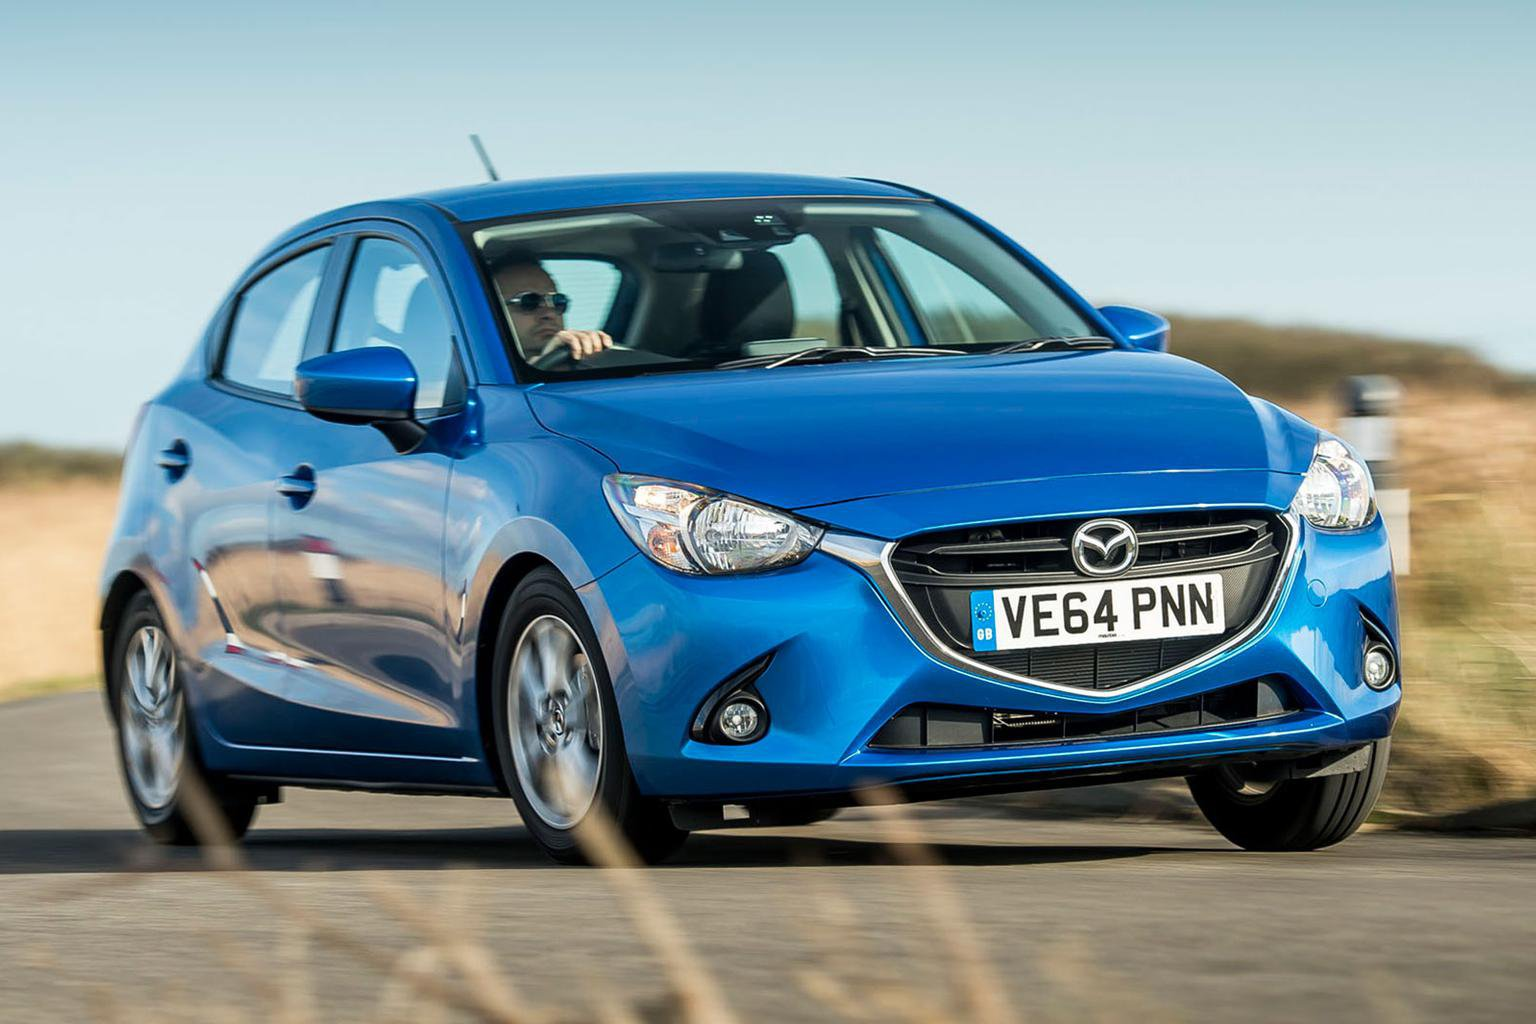 Deal of the Day: Mazda 2